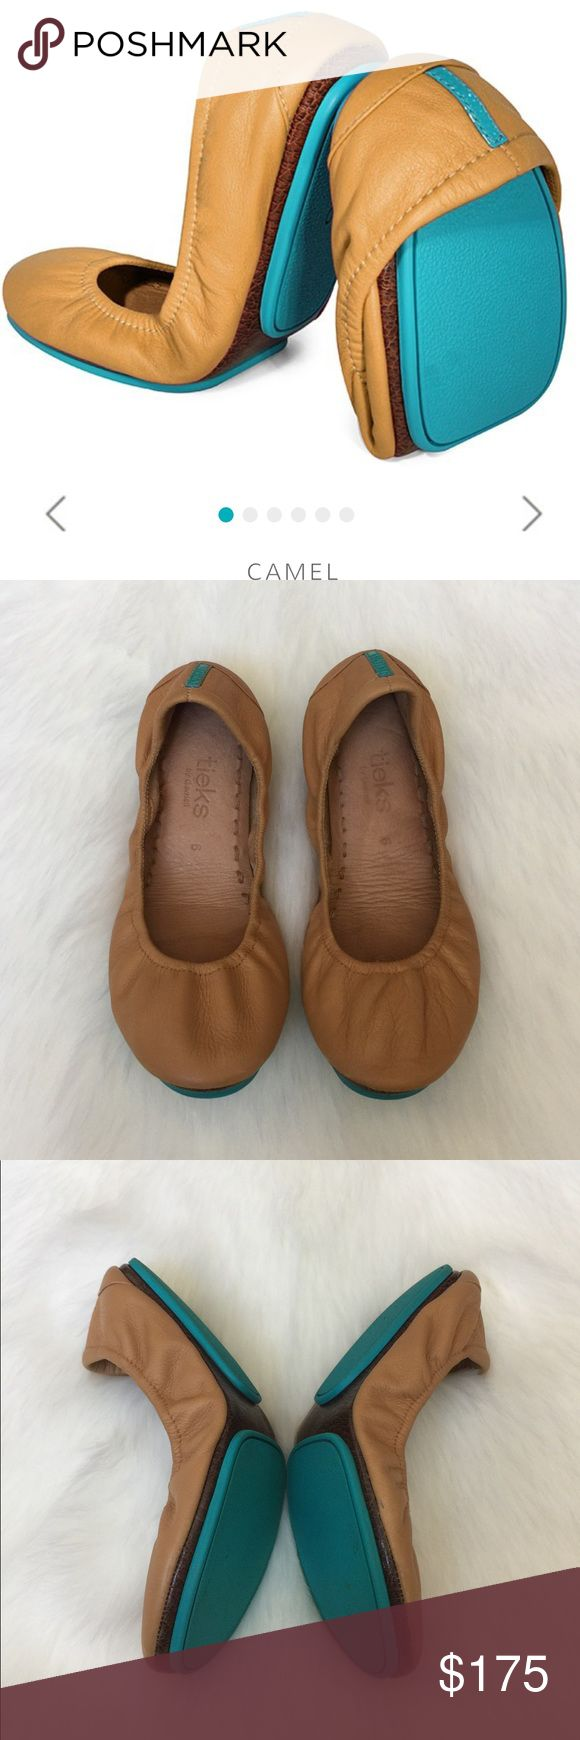 Tieks by Gavrieli Classic Camel ballet flats 100% premium, soft, full-grain leather Non-elasticized, cushioned back Non-skid rubber soles and cushioned instep.Excellent used condition.Please see pictures for details and flaws.✅Shoe pouch included and no box.✅Reasonable Offer.🚫No Trades.Also on another app Tieks Shoes Flats & Loafers